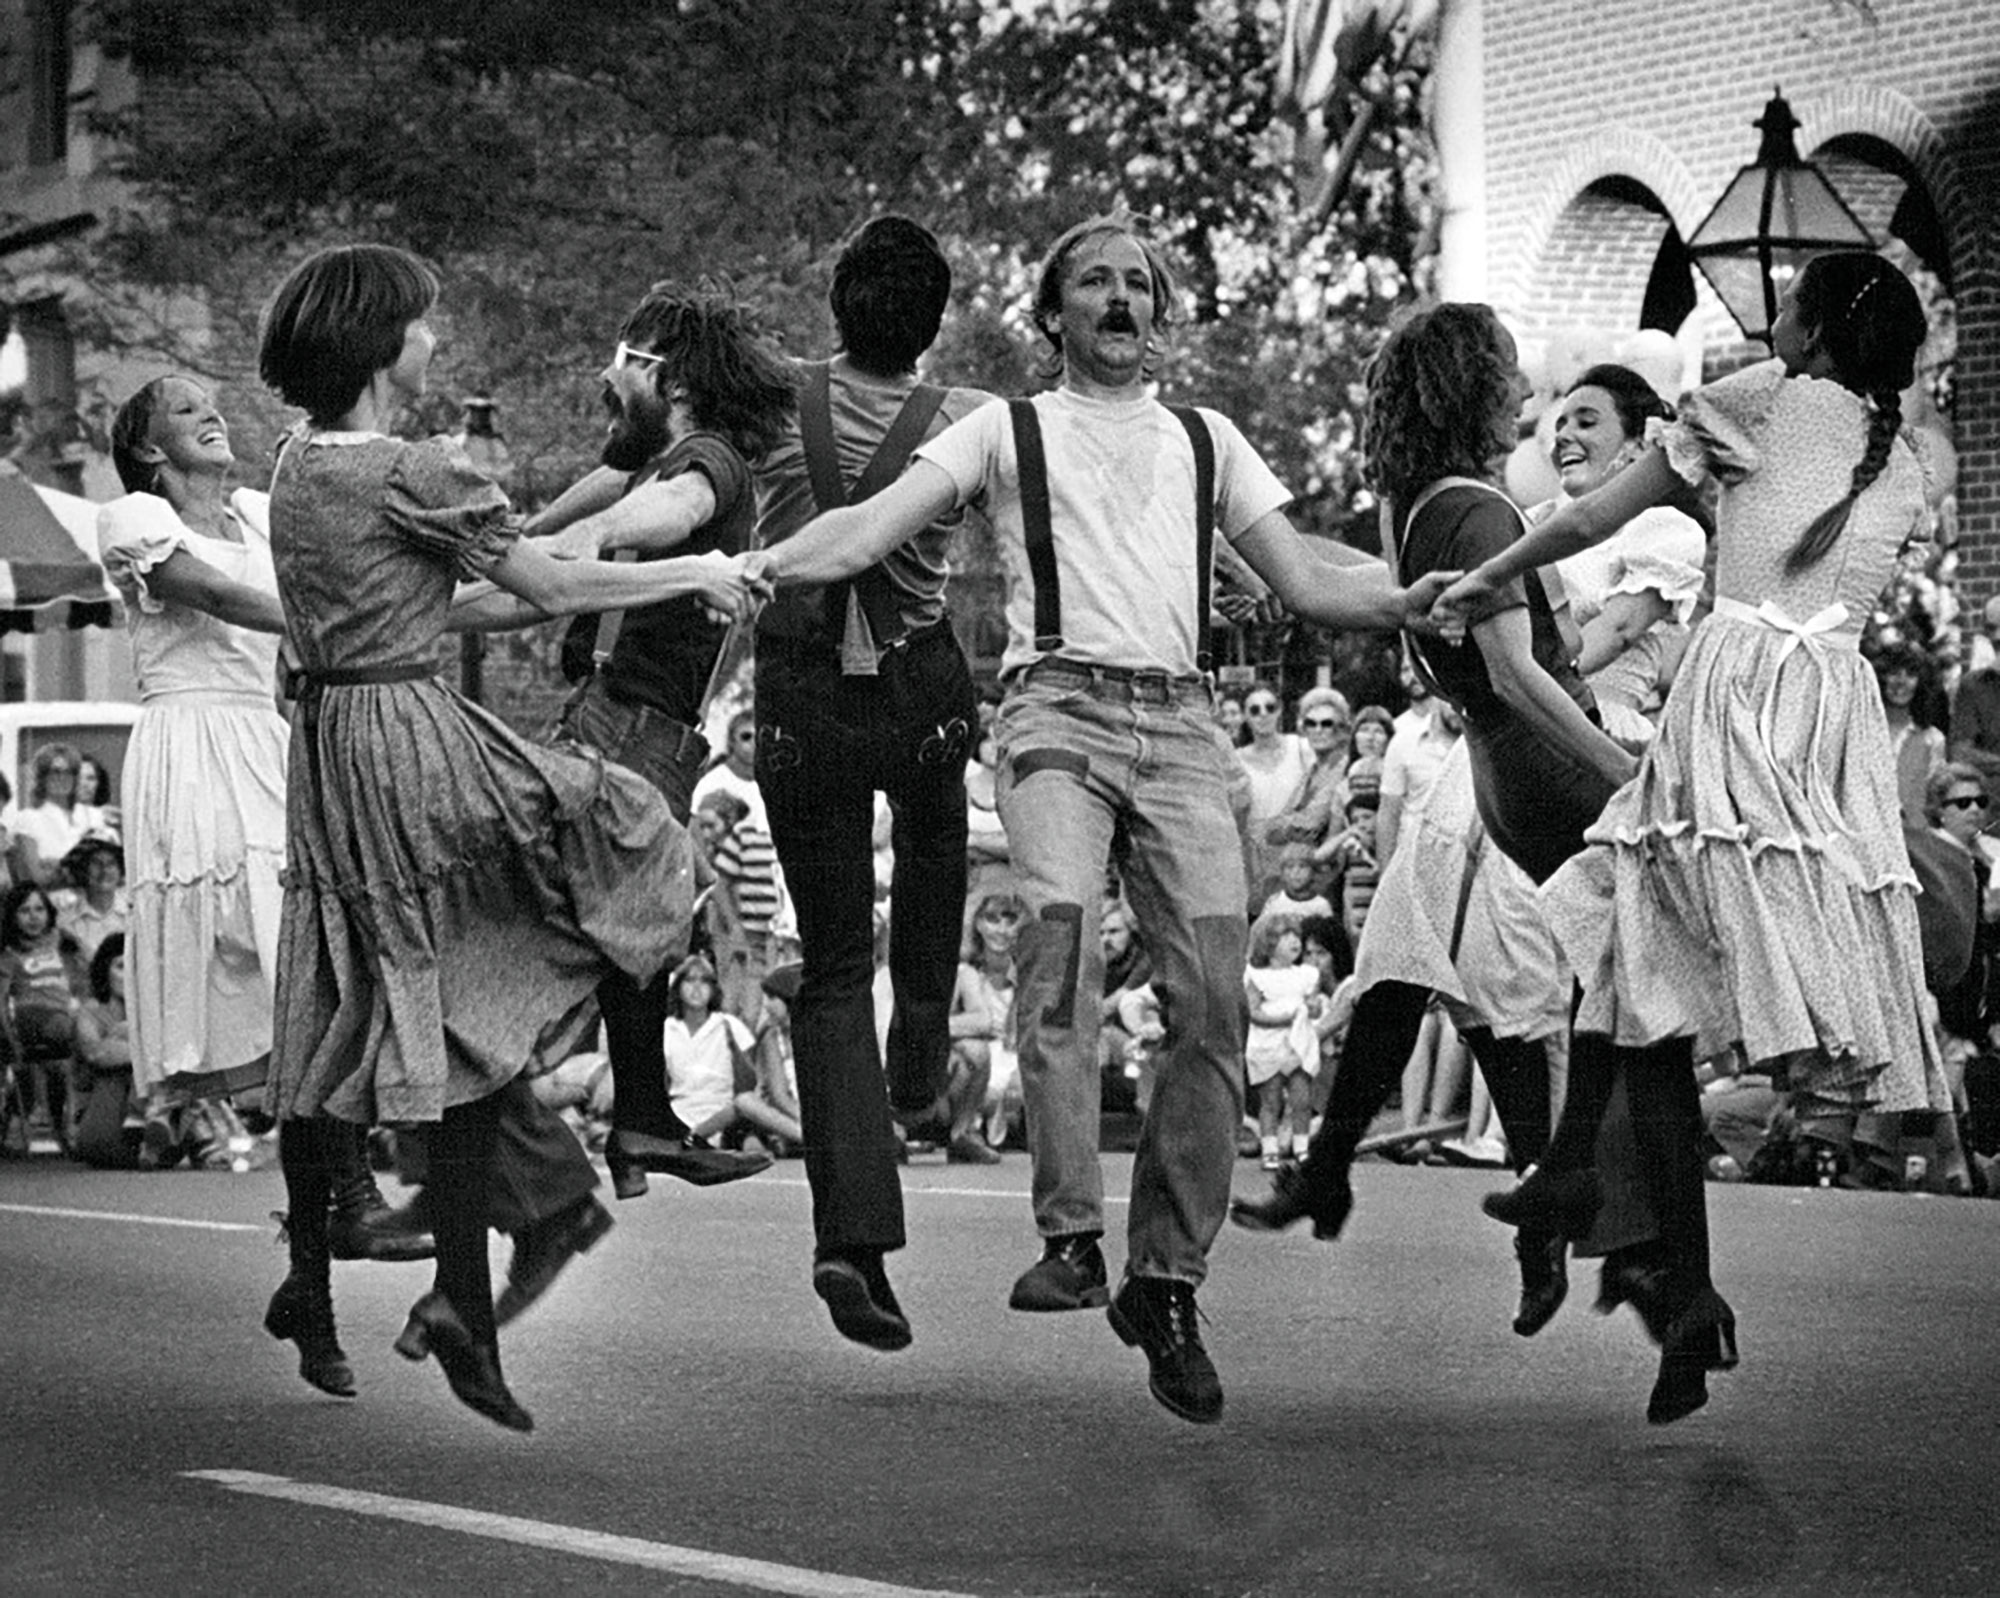 Members of the Hoofin High Country Cloggers lead dancing in the third annual Labor Day Weekend Hoedown in Larimer Square in 1979 in Denver.Ernie Leyba— Denver Post via Getty Images